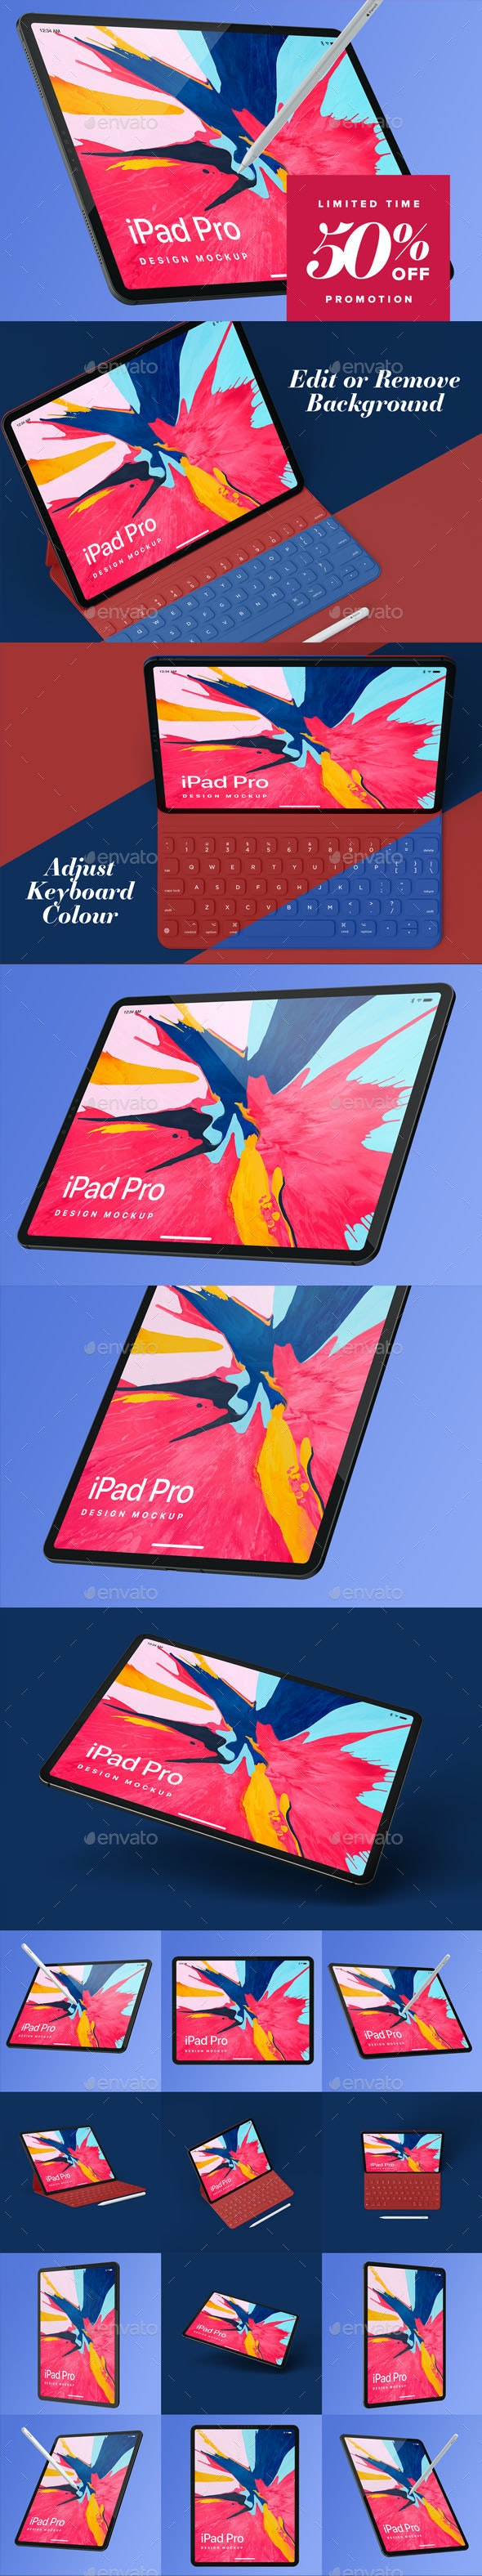 Pad Pro Design Mockup - Mobile Displays